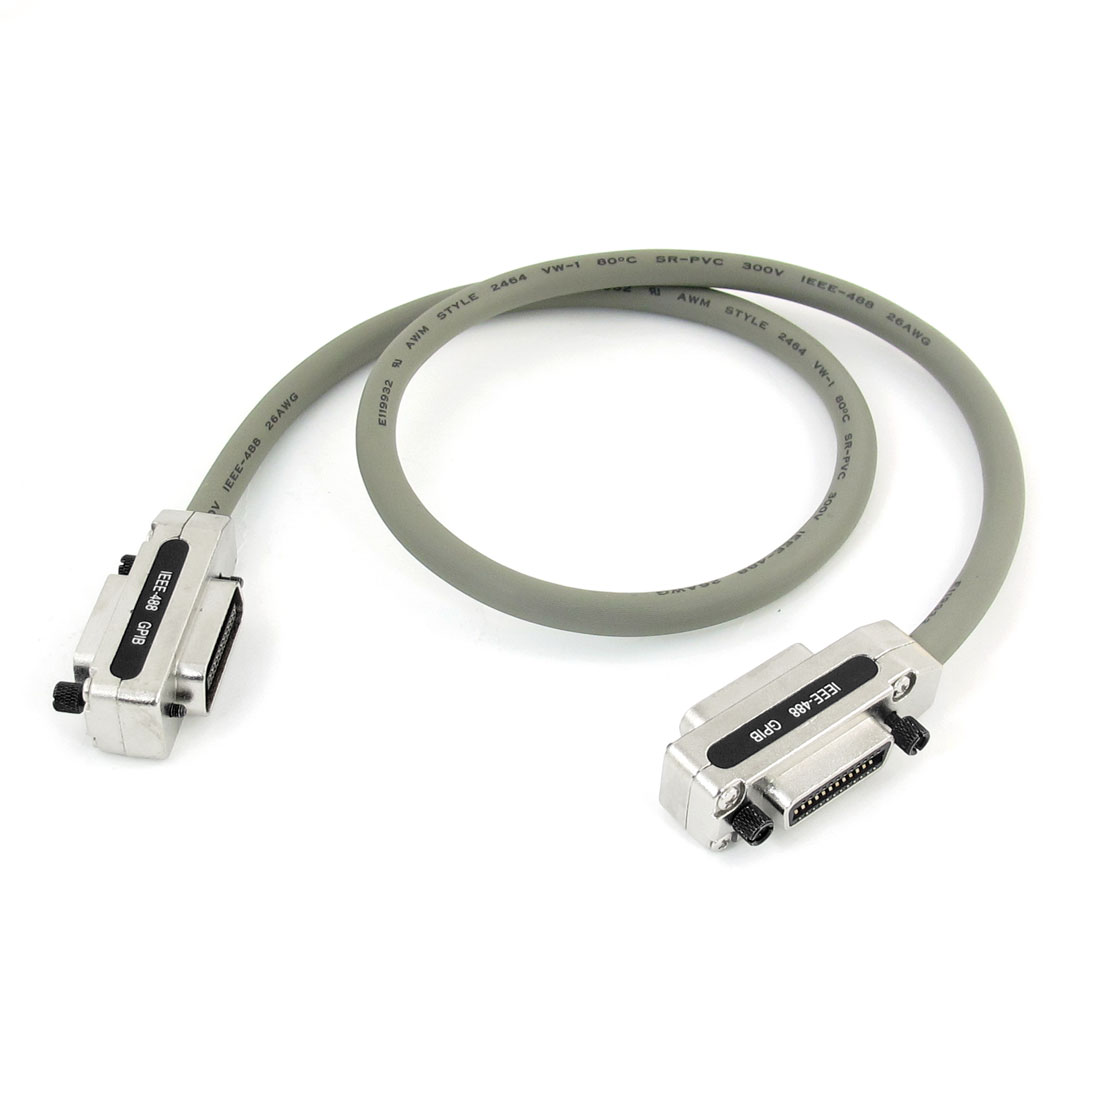 1 Meter Length Gray IEEE-488 GPIB Connector Extension Cable